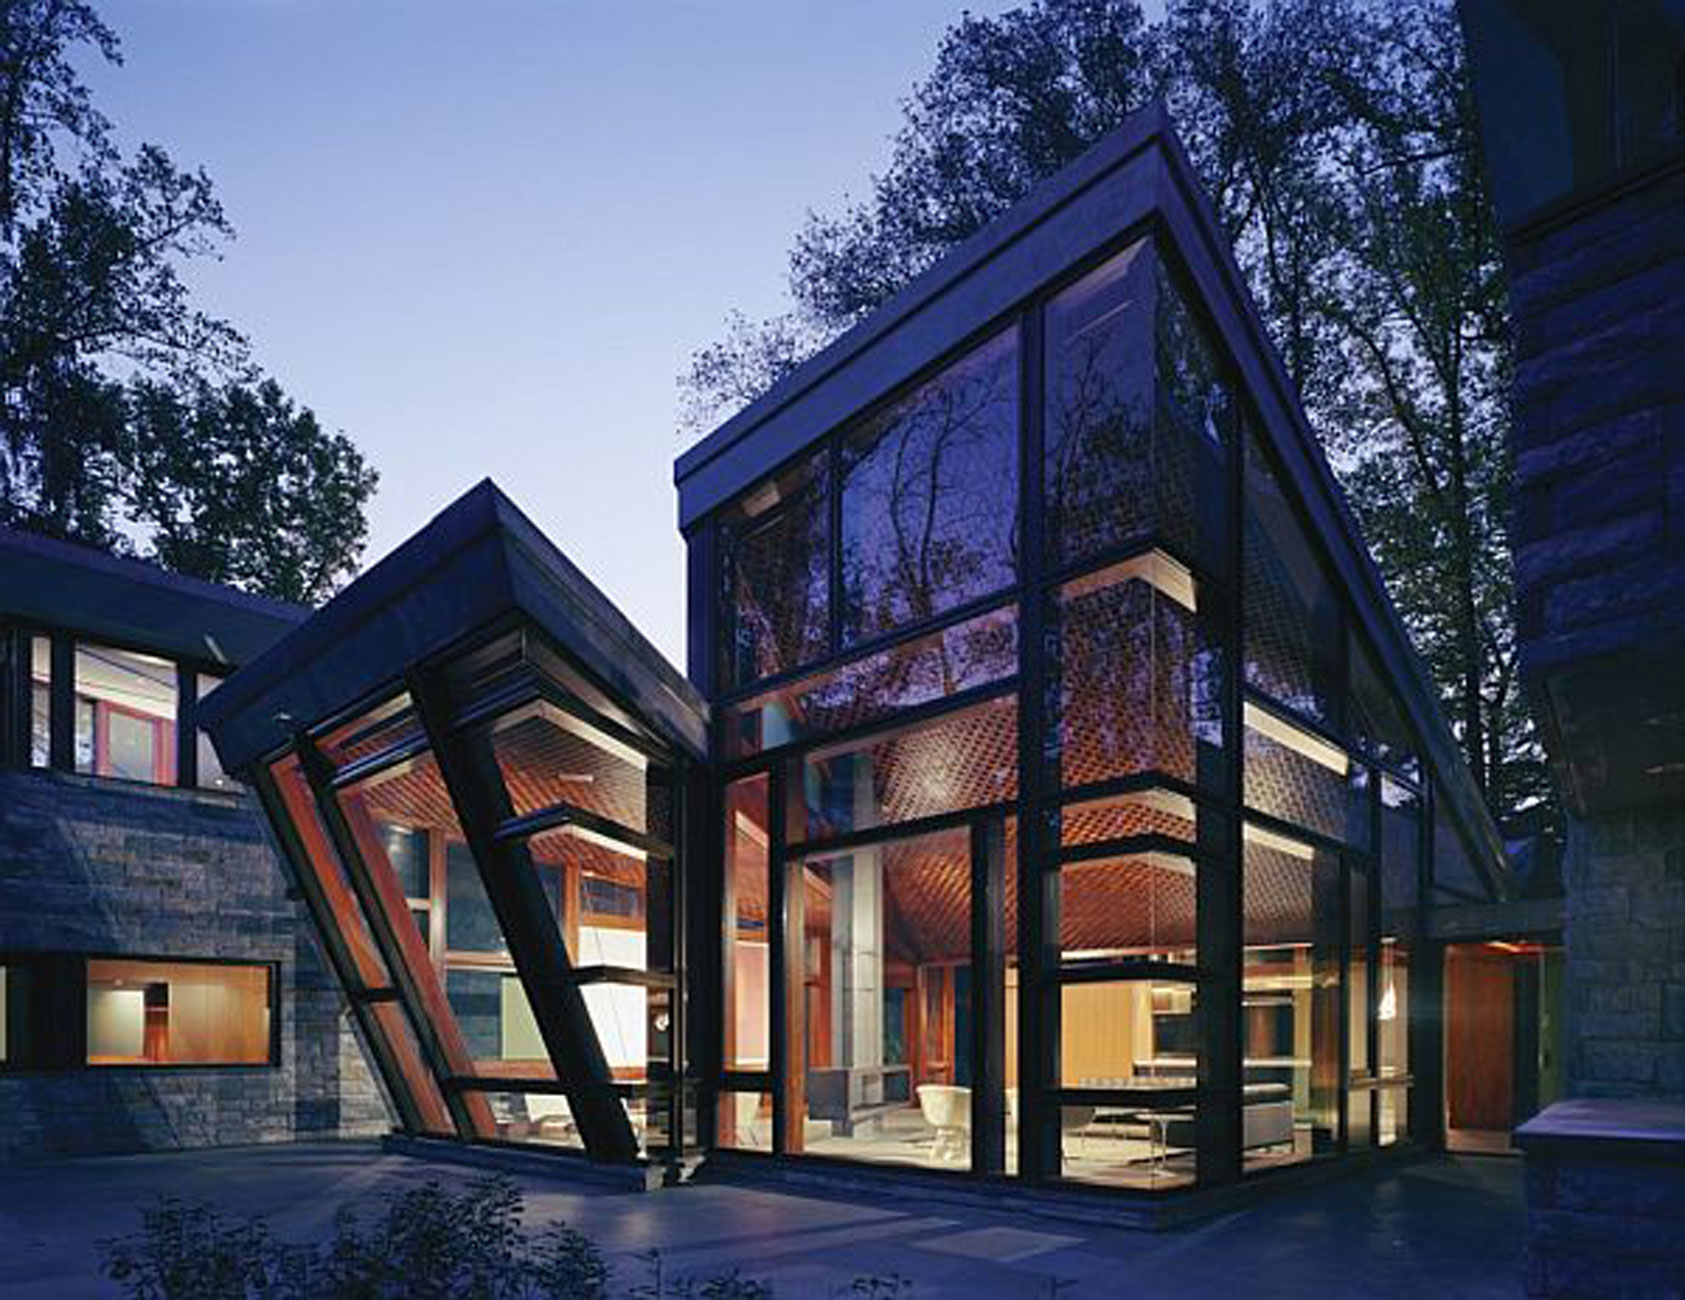 Sunday evening art gallery blog glass houses humoring for Glass house plans and designs